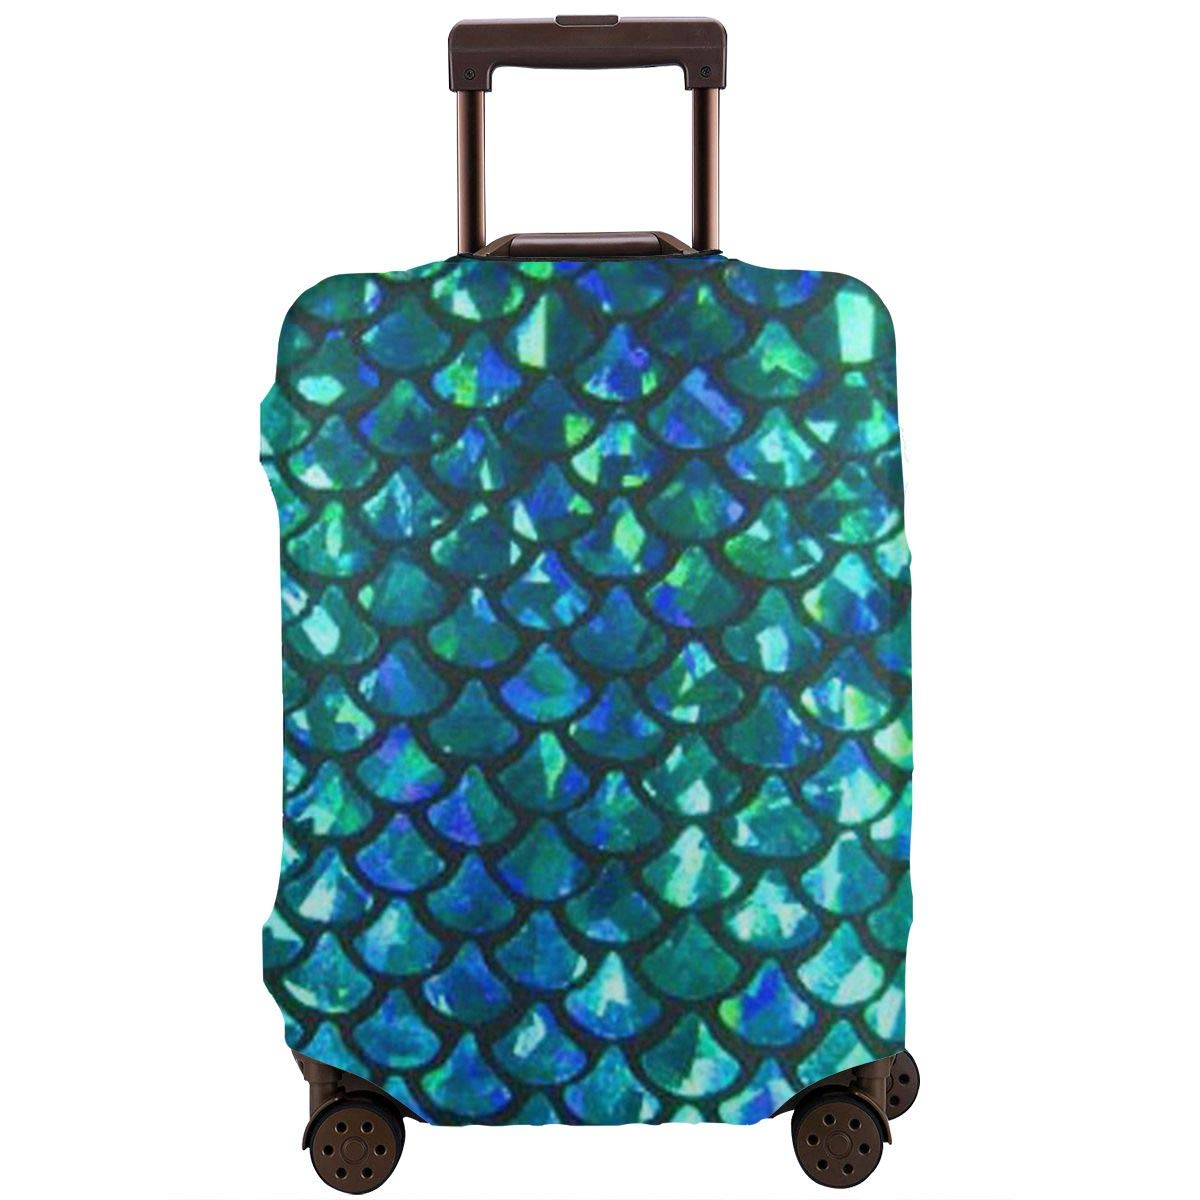 Tlkkkd_N Mermaid Scales Travel Luggage Cover Anti-Scratch Baggage Suitcase Protector Cover Fits 18-32 Inch